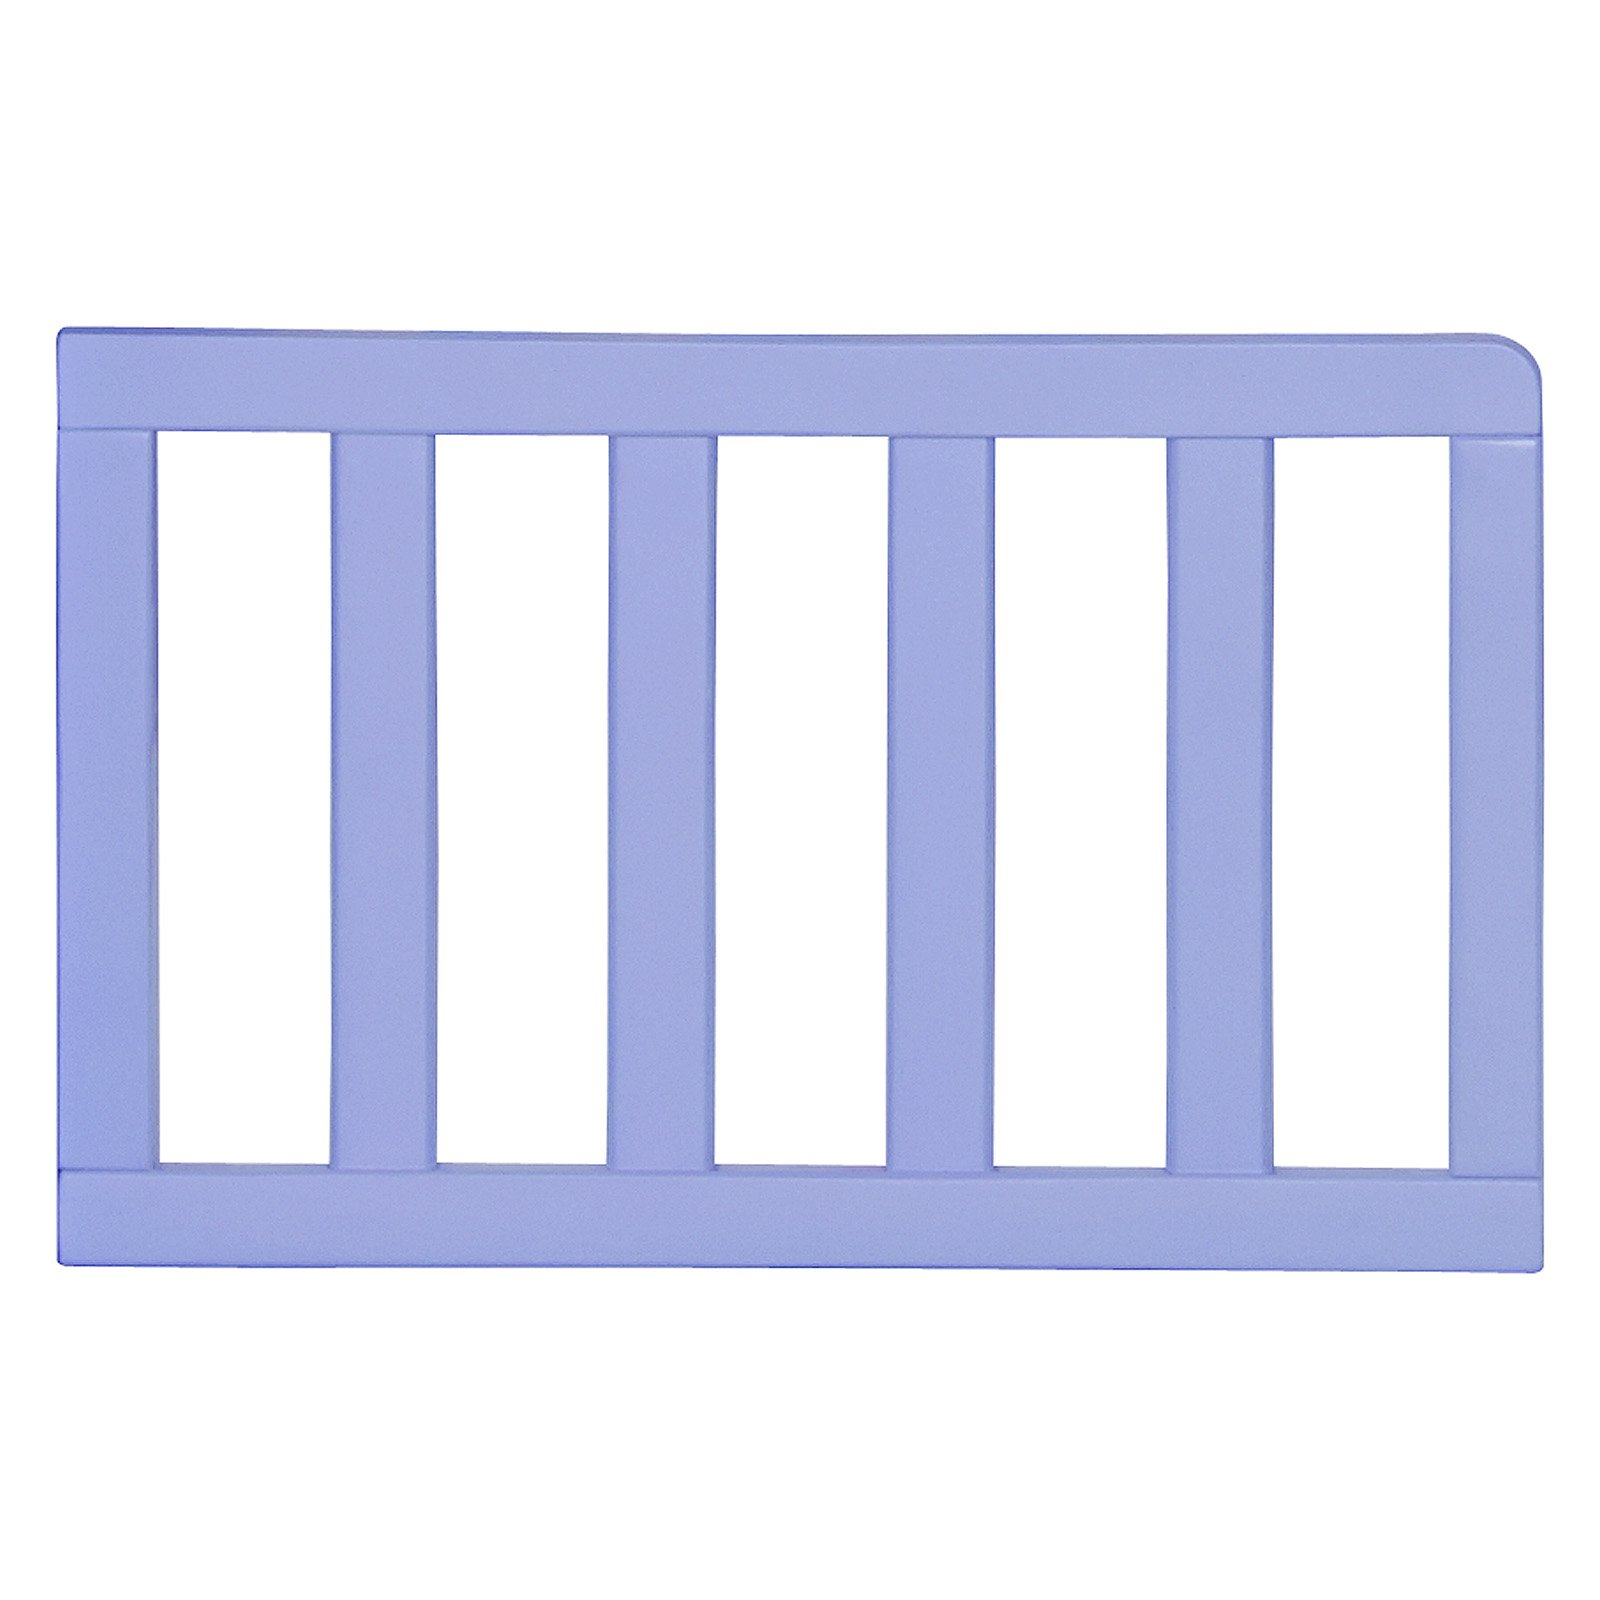 Suite Bebe Riley Toddler Guard Rail